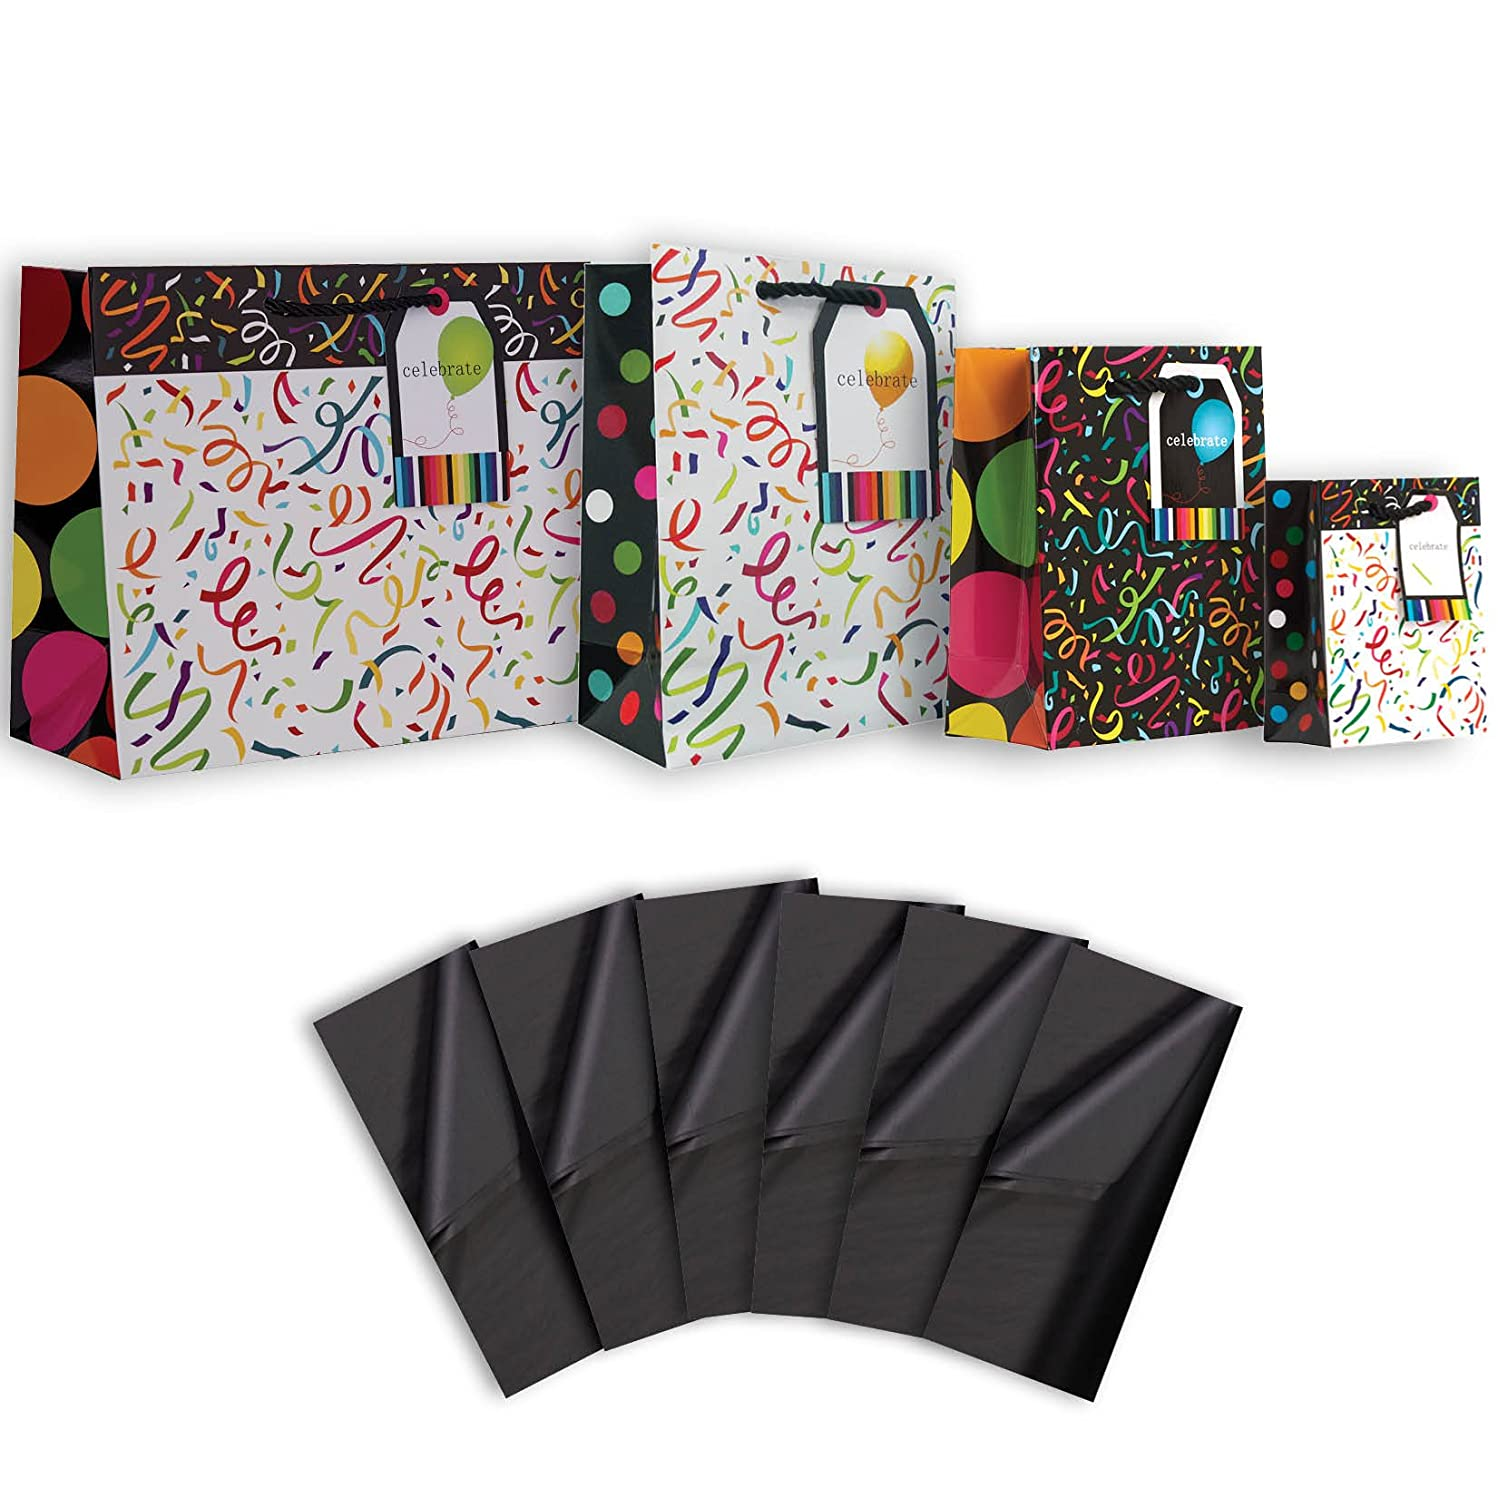 Jillson Roberts 4-Count Gift Bag and Tissue Paper Sets Available in 4 Different Assortments, Assorted Sizes Confetti and Streamers